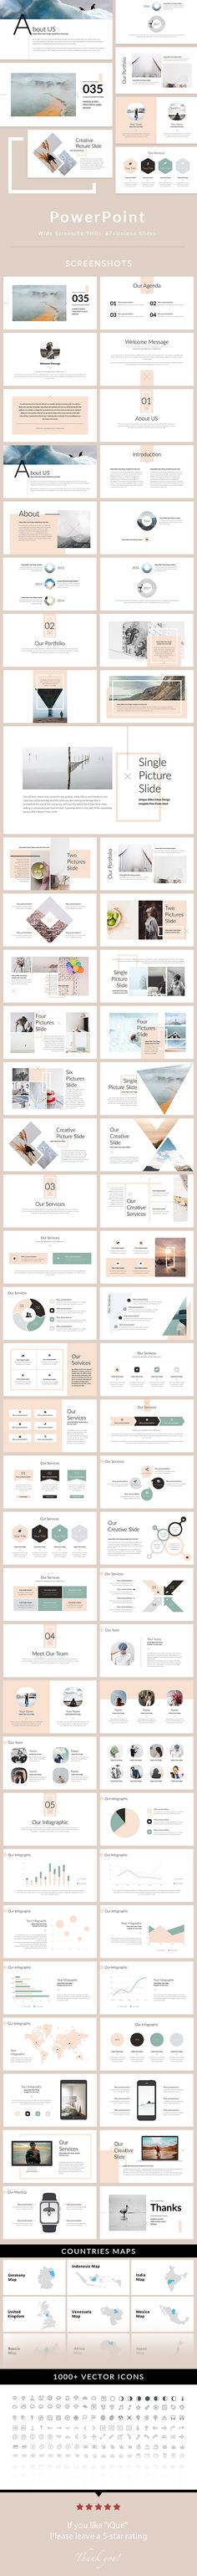 iQue - PowerPoint Presentation Template - Creative PowerPoint Templates - PowerPoint Presentation Template — Powerpoint PPT #corporate #flow chart